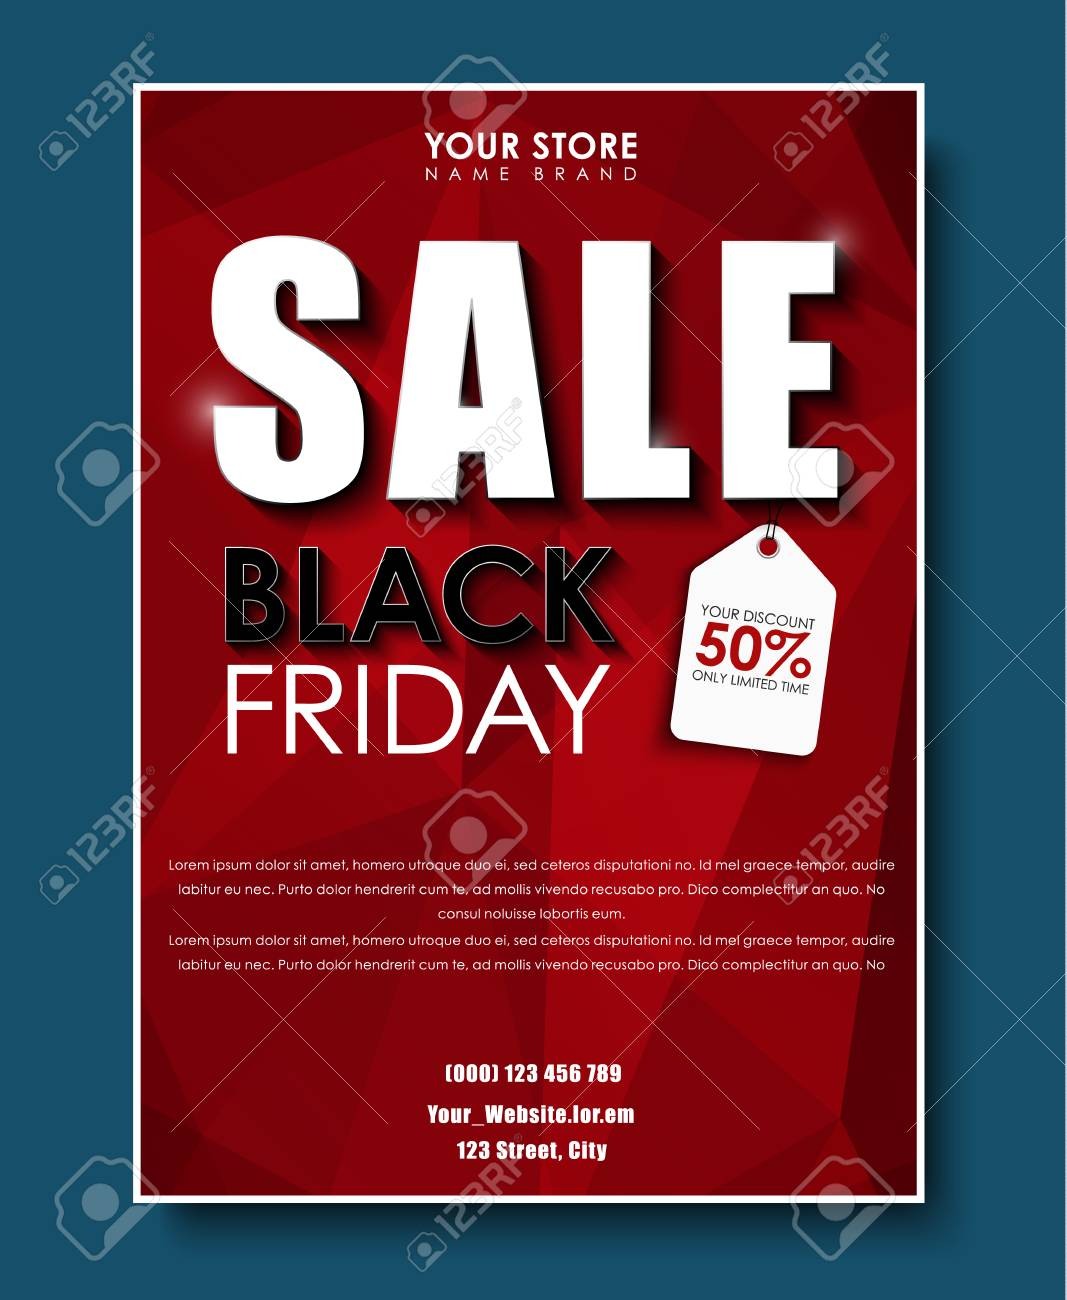 Design A Poster Flyers Banners For Sales On Black Friday Royalty Free Cliparts Vectors And Stock Illustration Image 65887387